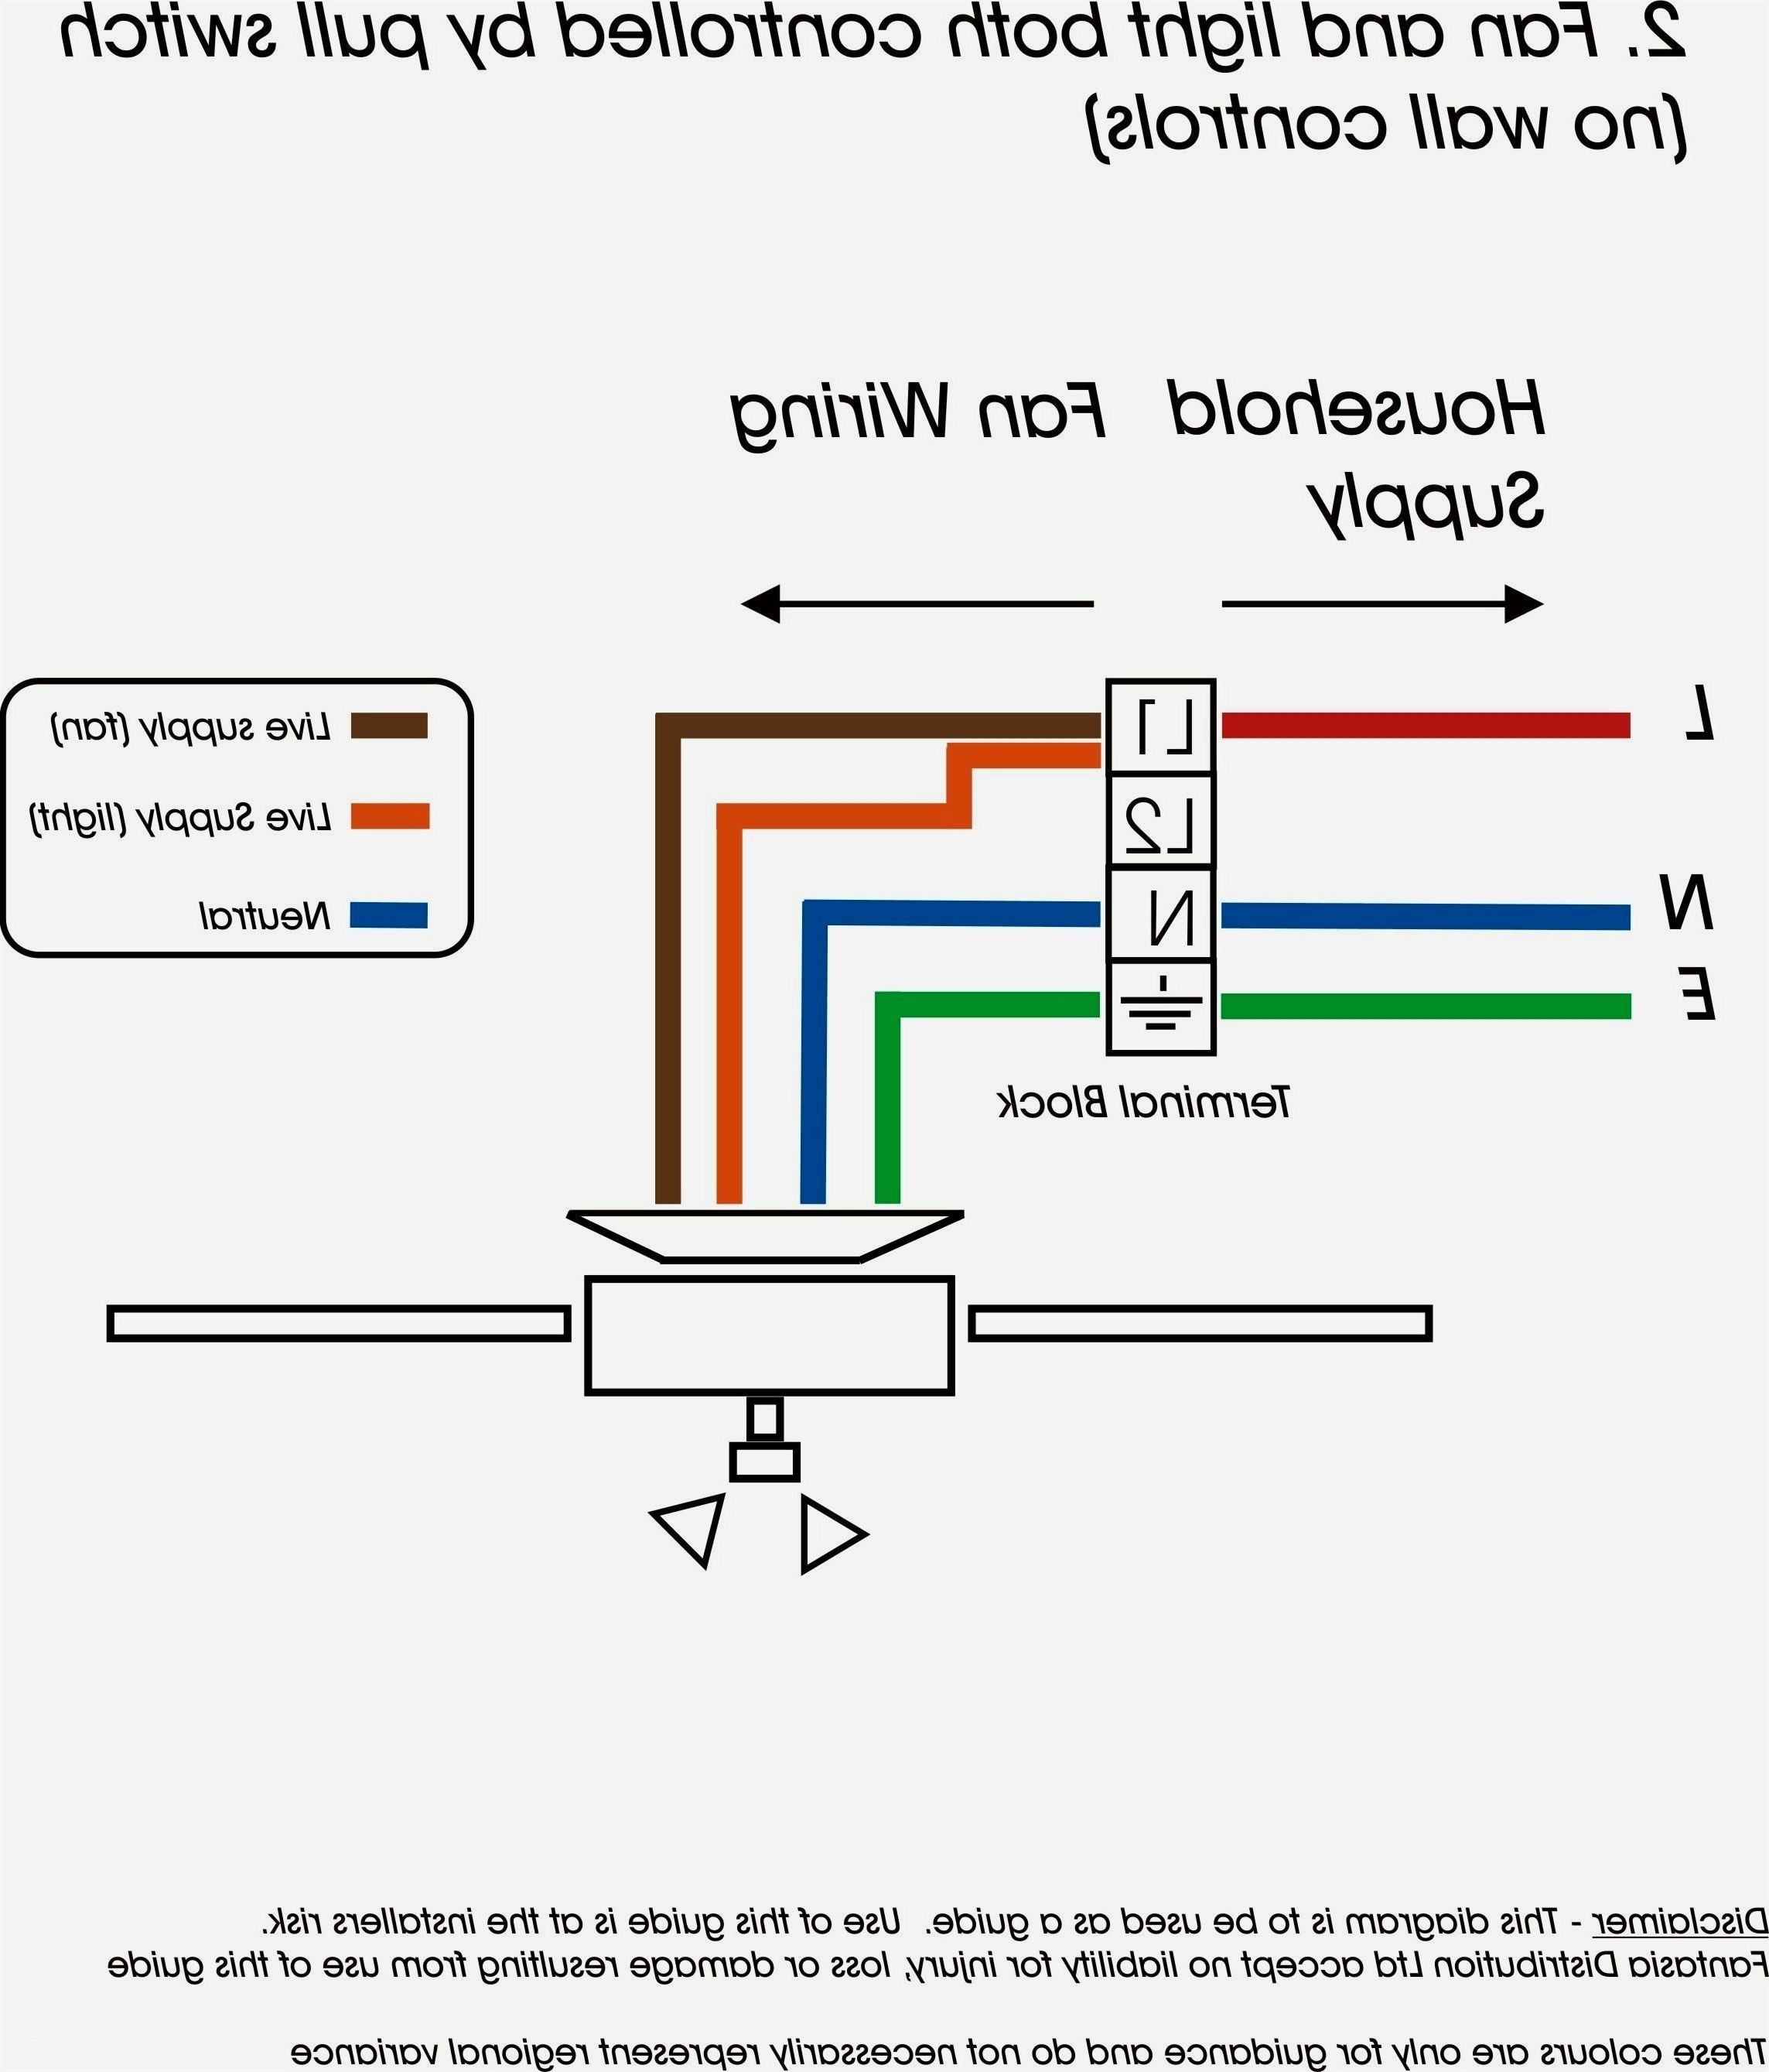 aircraft wiring diagram software Collection-Aircraft Wiring Diagram Legend Refrence Free Electrical Diagram Aircraft Wiring Diagram software Sample 13-m